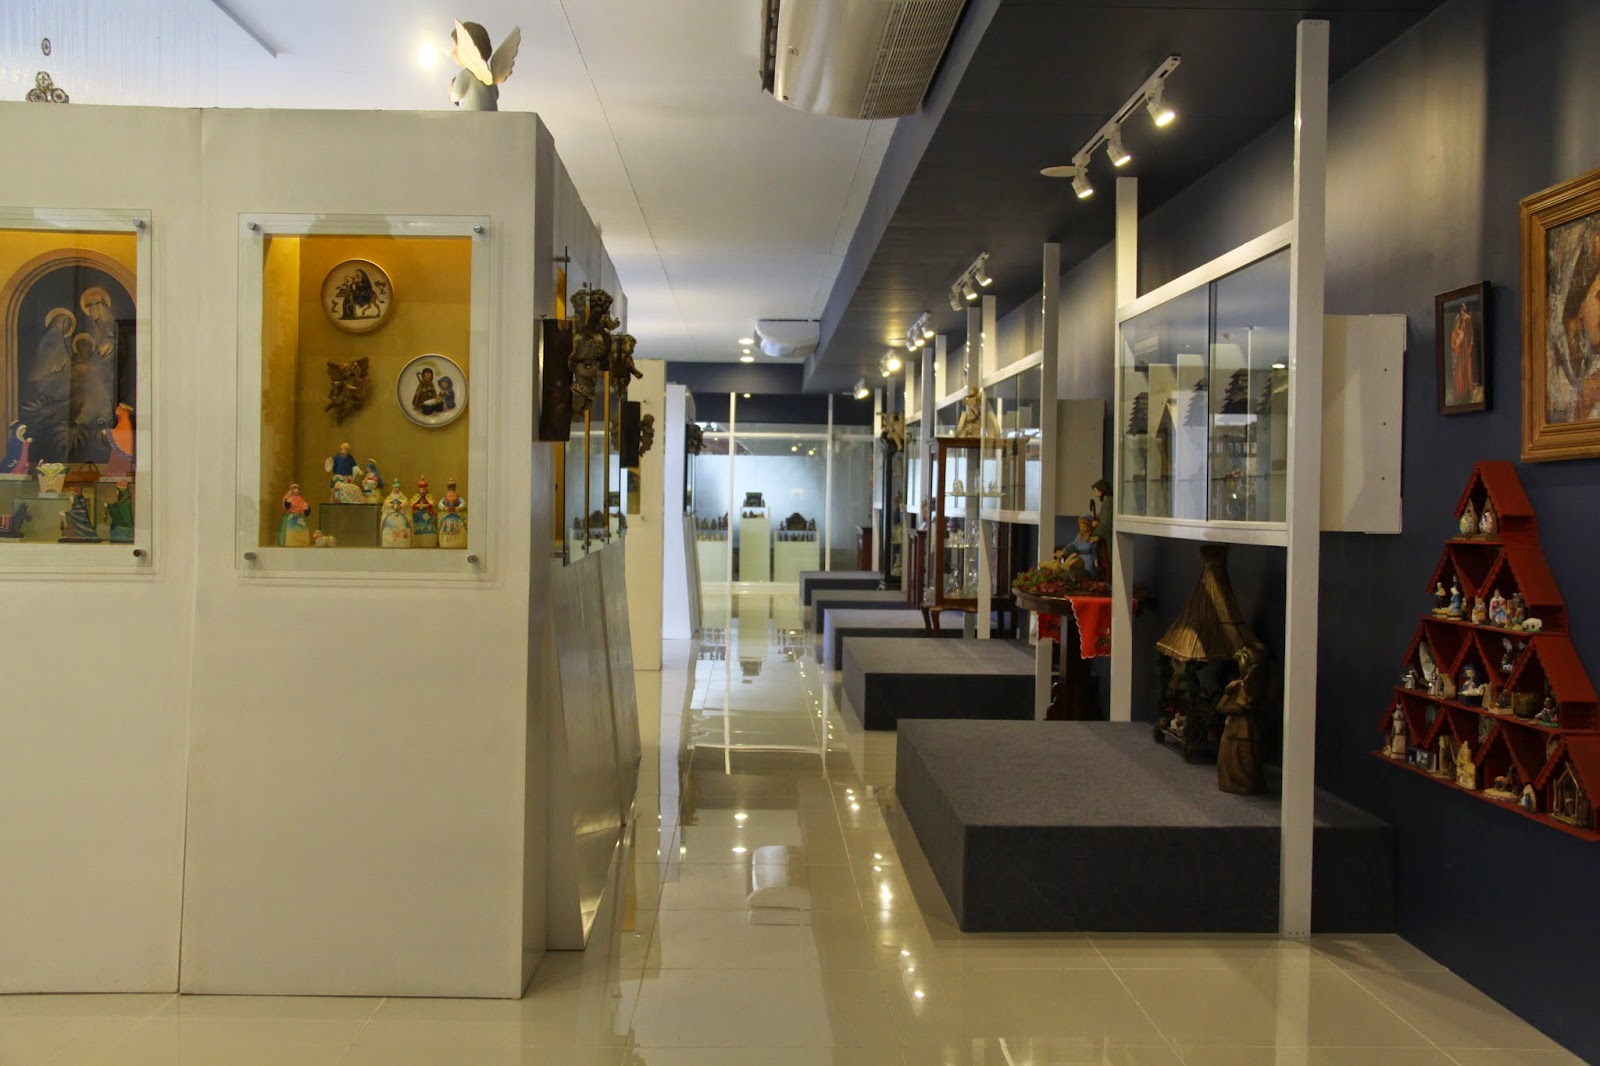 Sneak peek inside the Belen Museum